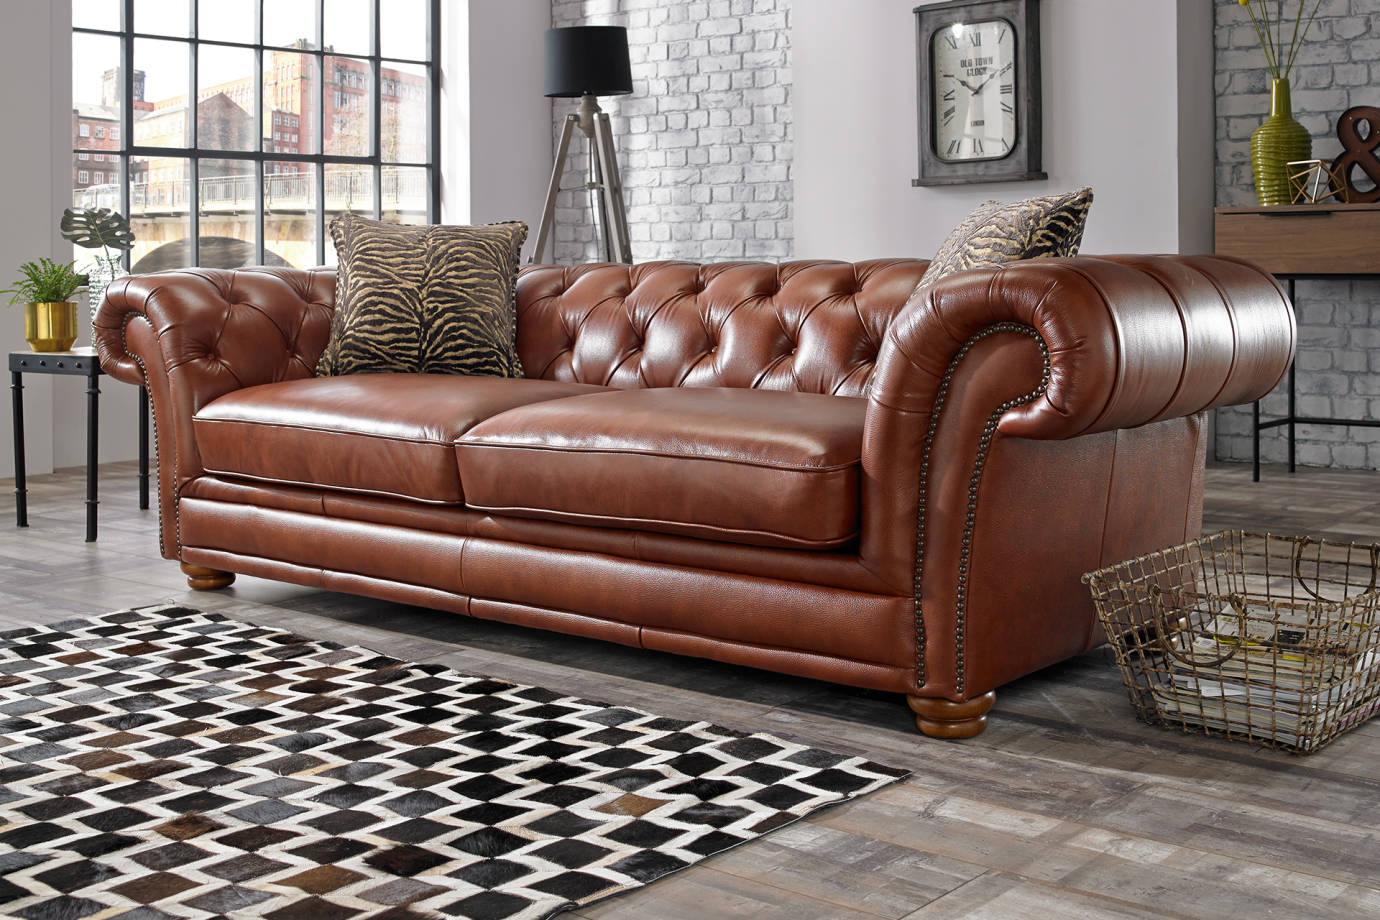 brown leather chesterfield style sofa